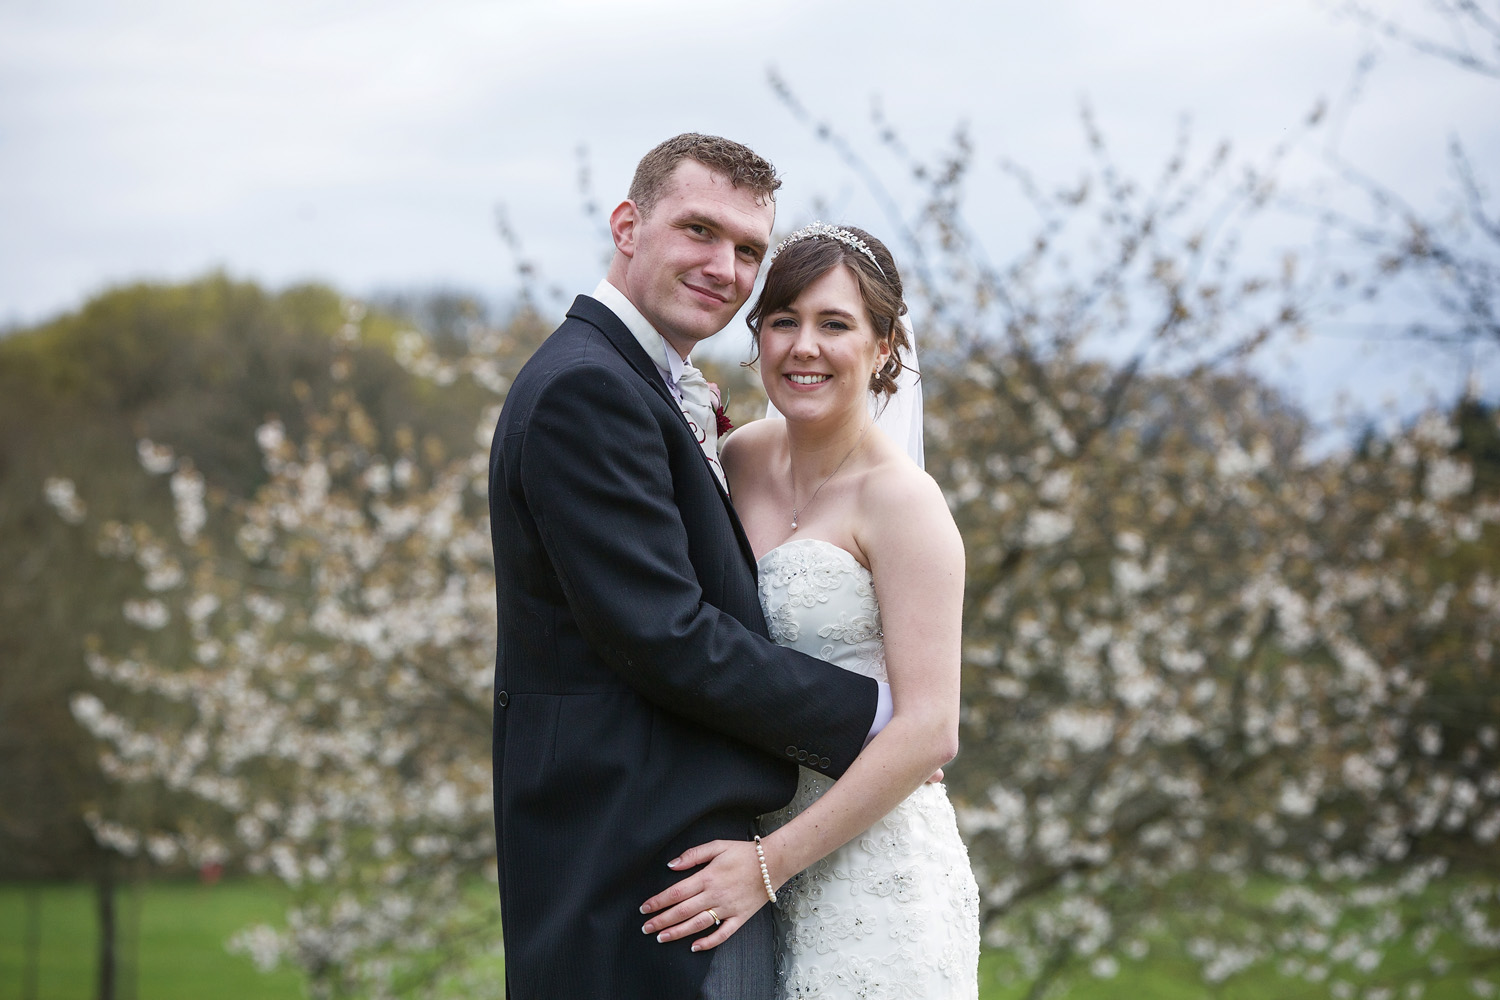 Sandford_Springs_Wedding_Photographer_Newbury_024.jpg